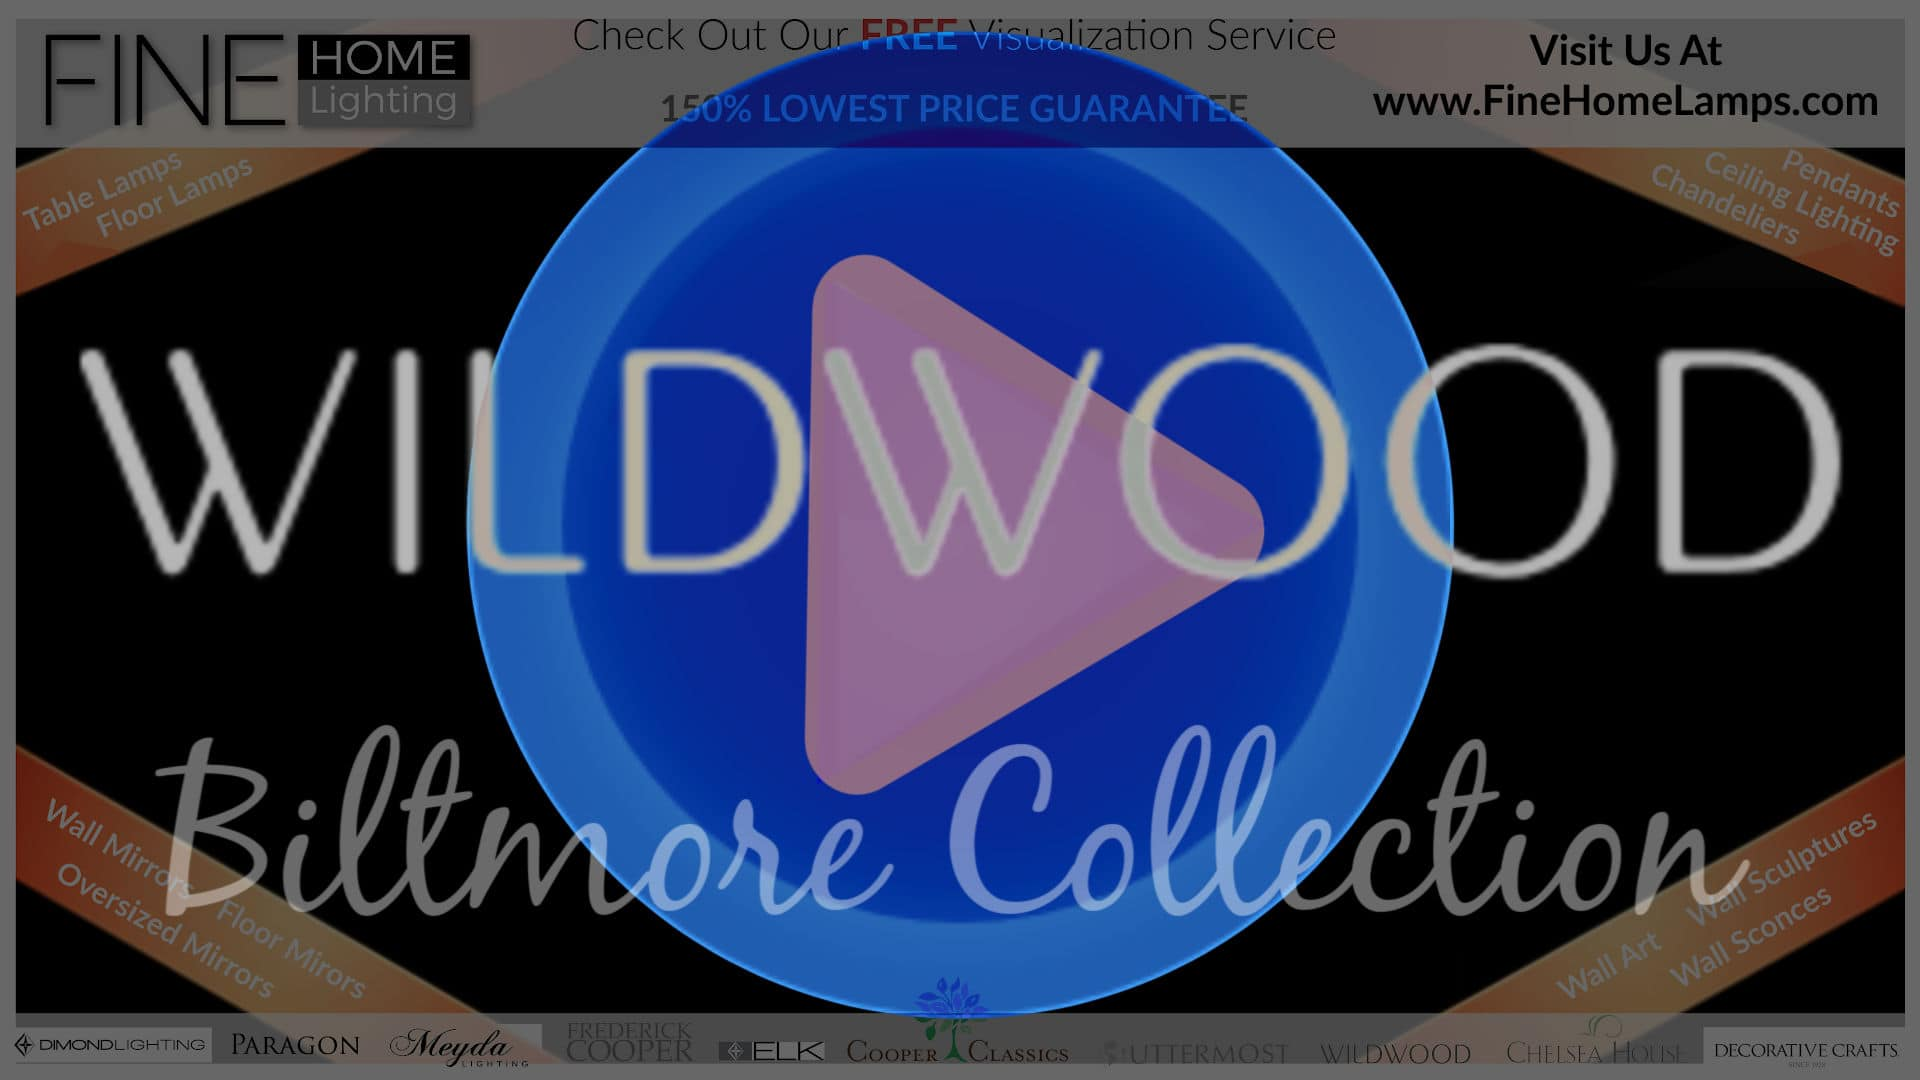 Wildwood-Biltmore-Collection-Thanks-for-watching-this-video-Get-an-additional-15-percent-off-your-next-purchase-Use-Coupon-Code-VIDEO-2